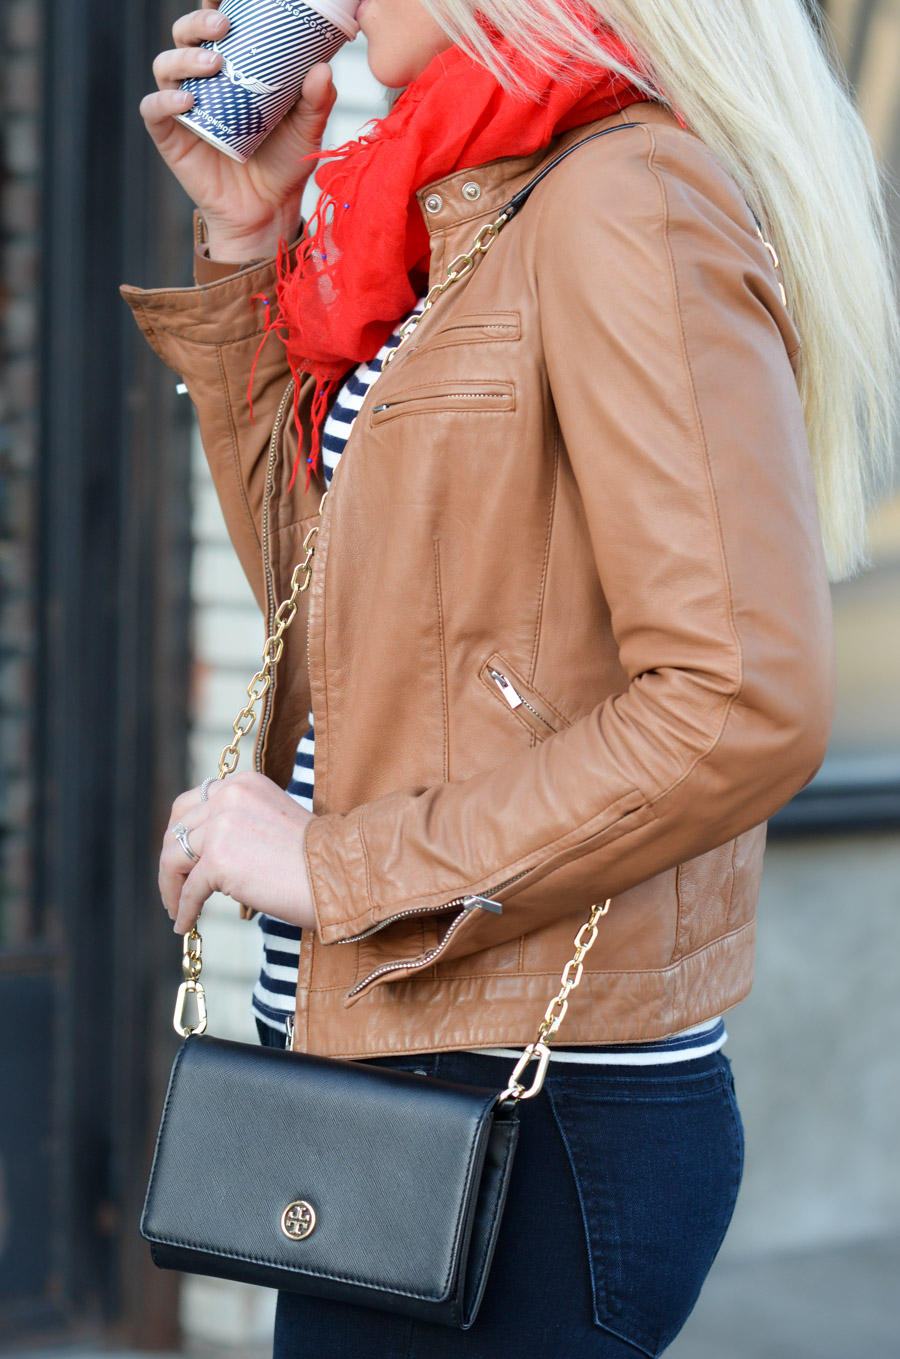 French Style Leather Jacket Outfit with Striped Tee + Tory Burch Crossbody Wallet